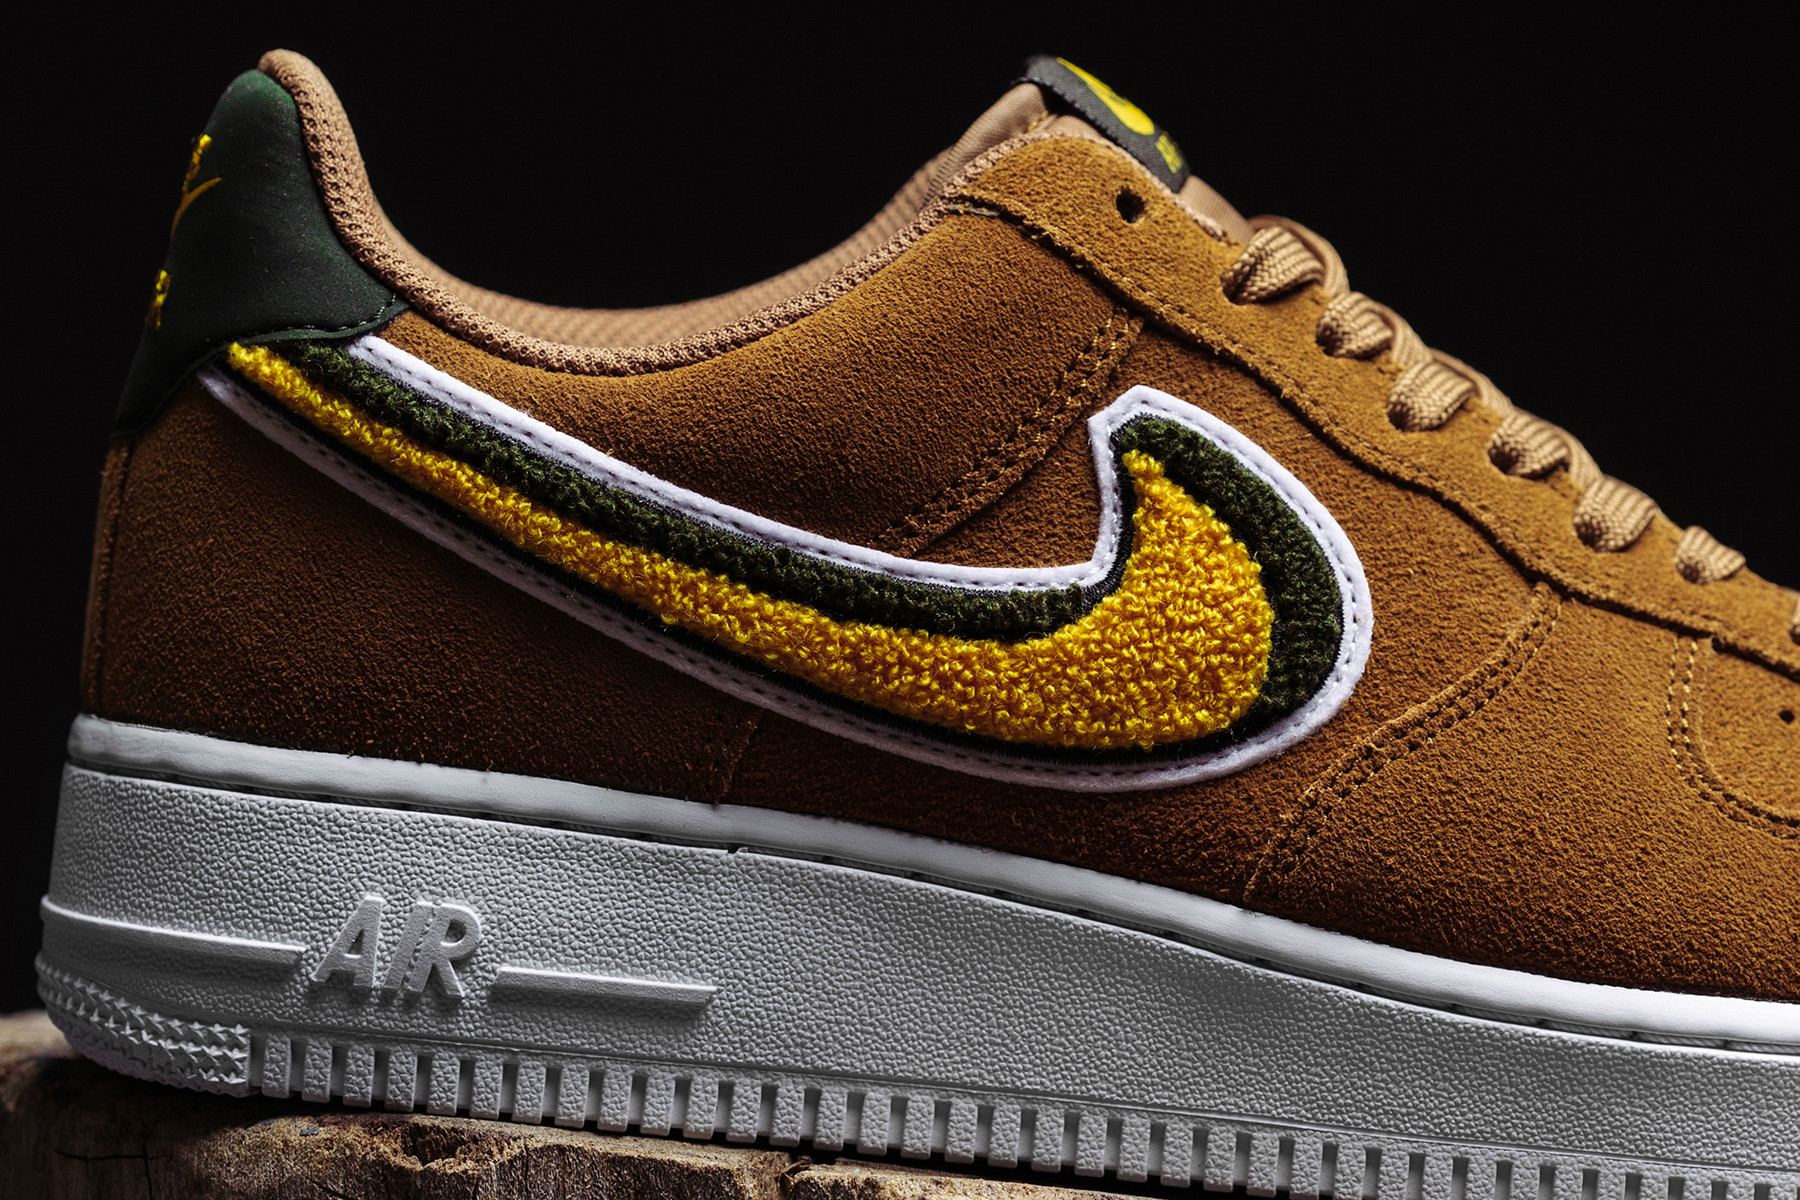 Nike Air Force 1 07 LV8 Muted Bronze in